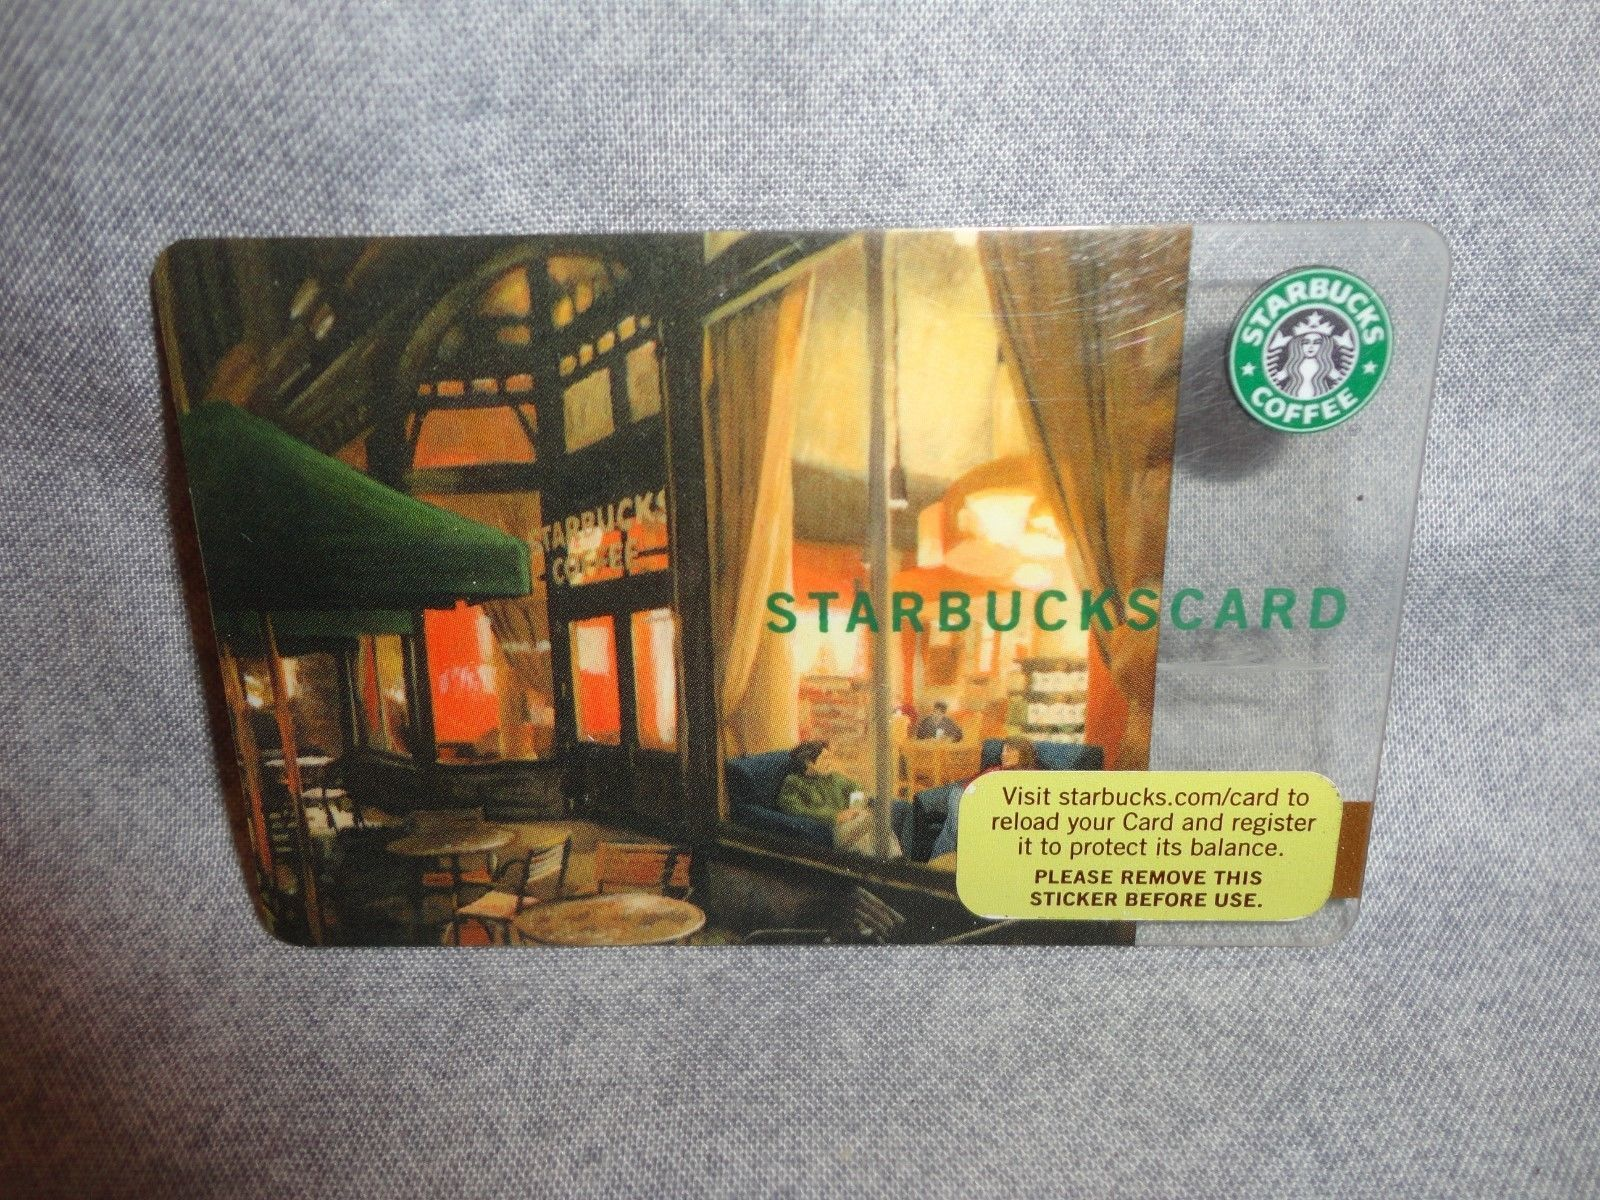 STARBUCKS CARD 2006 STORE FRONT THEME GIFT CARD NO BALANCE / RELOADABLE NEW